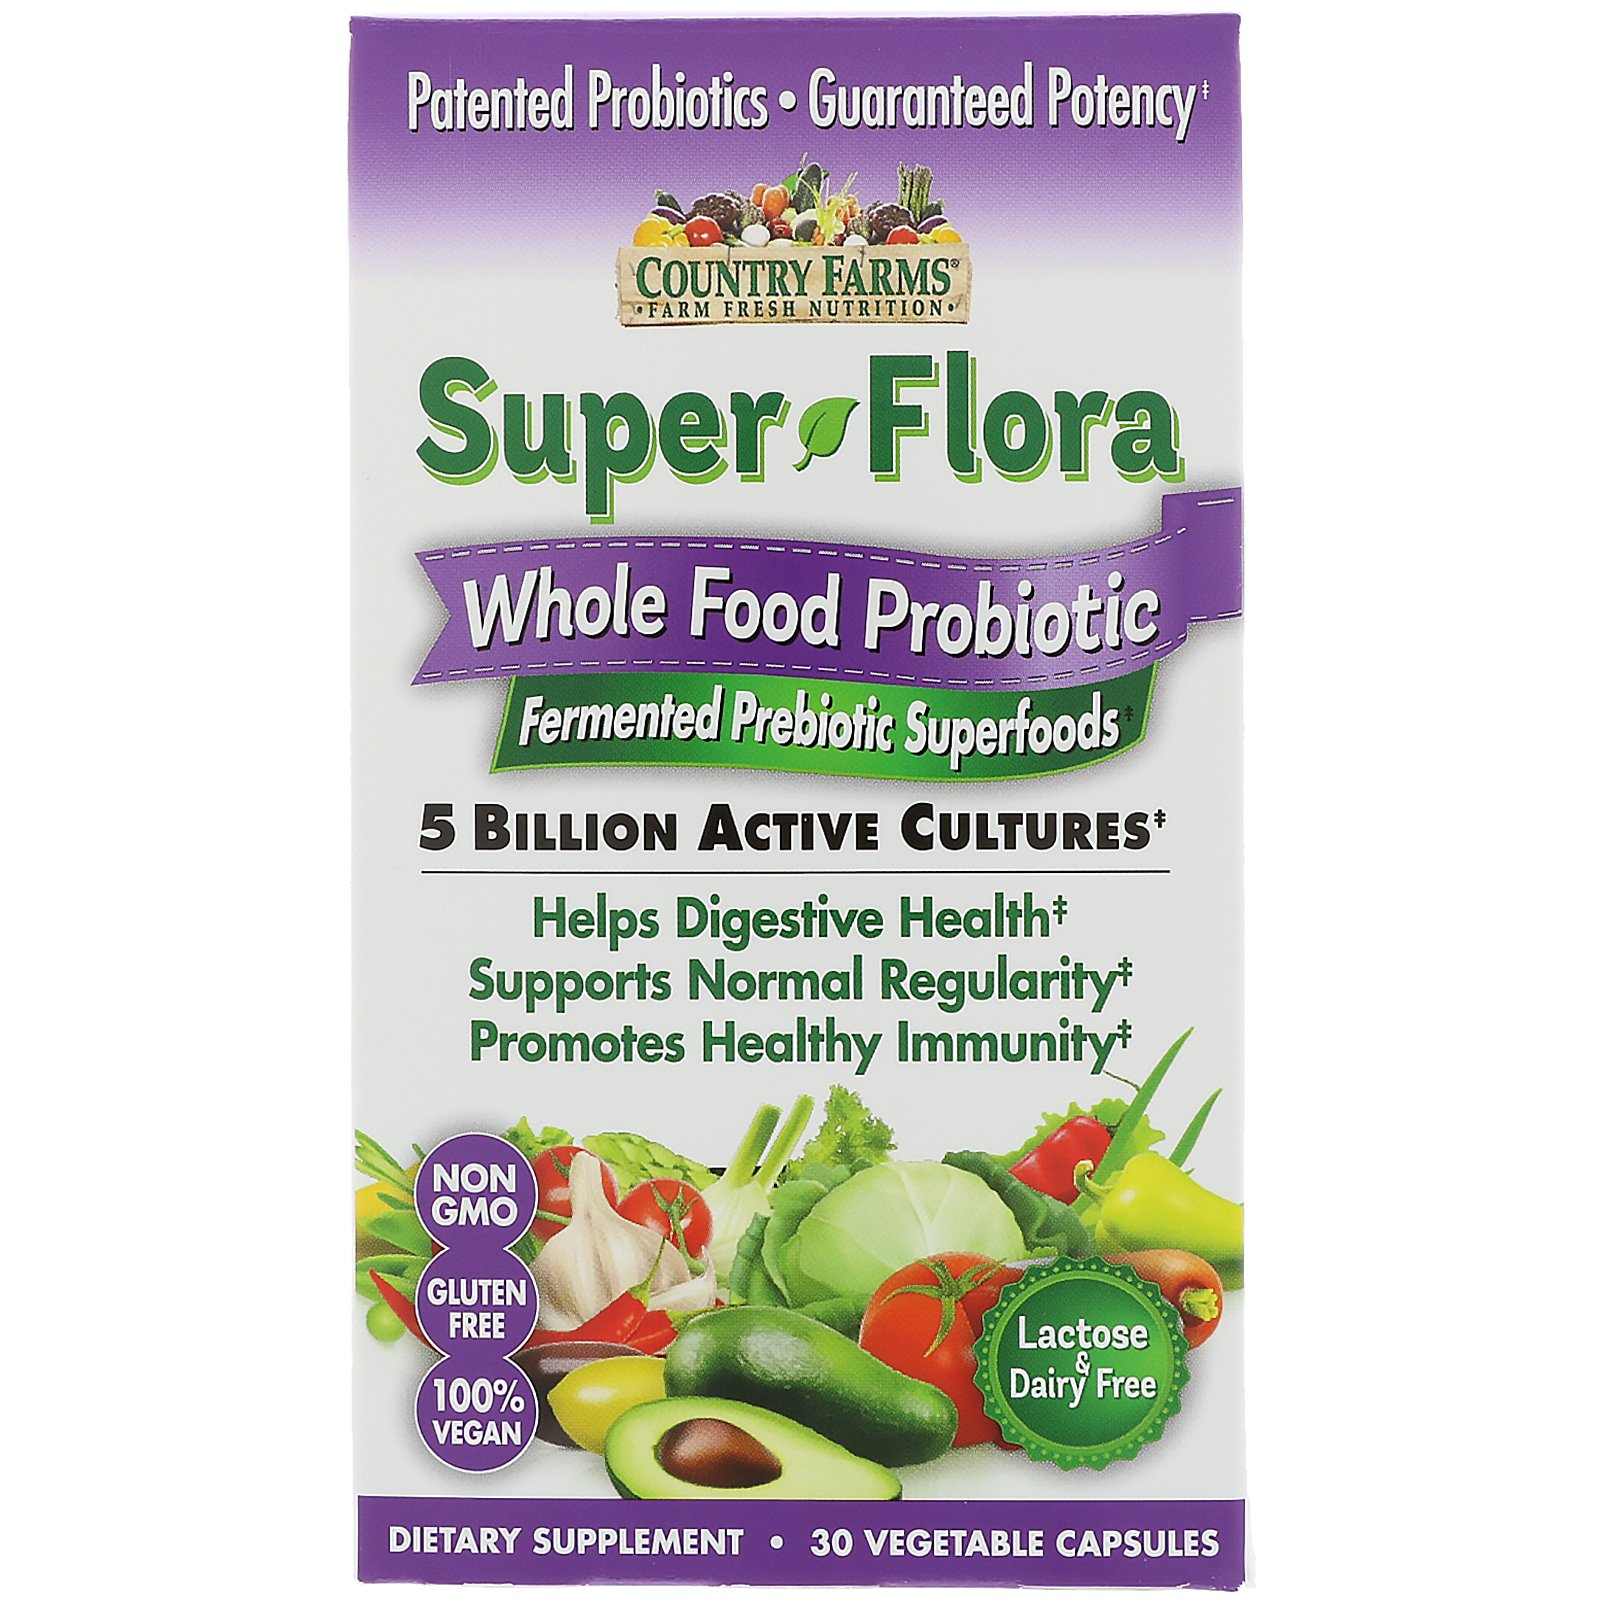 Country Farms Super Flora Whole Food Probiotic Reviews